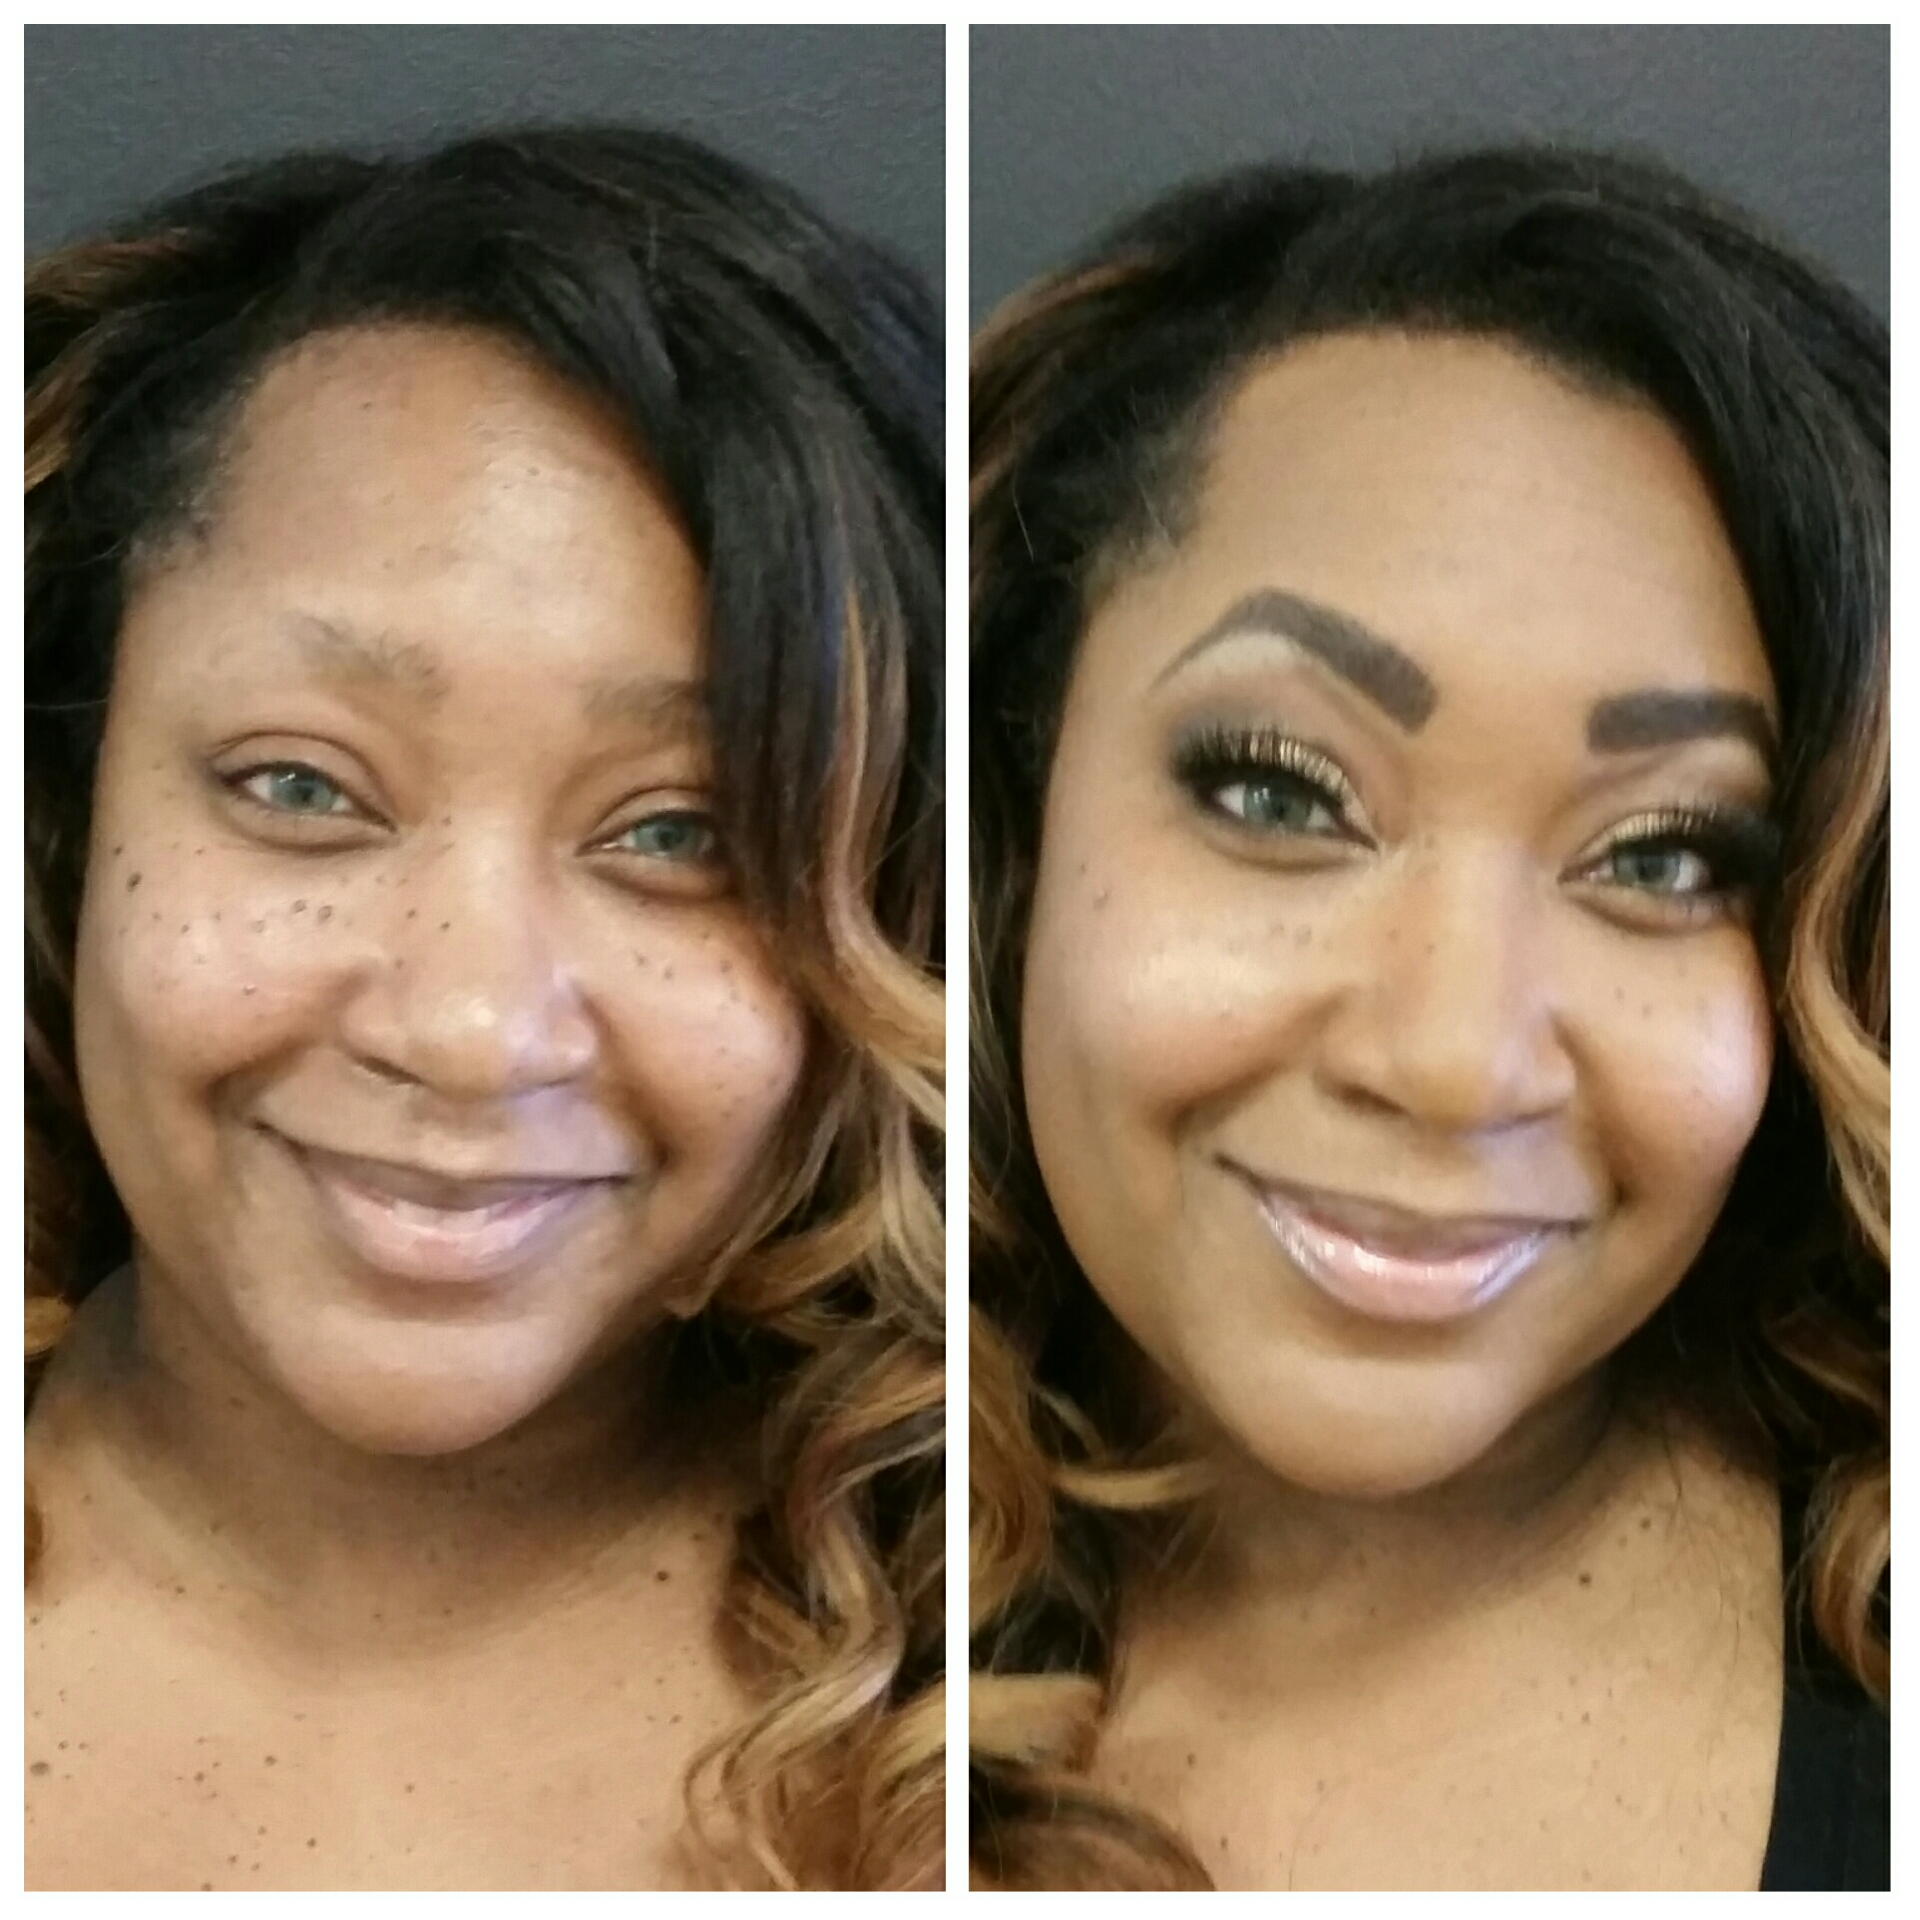 Glamorous Birthday Party Makeup with False Lashes by Luminous Beauty Makeup Artist Richfield.jpg